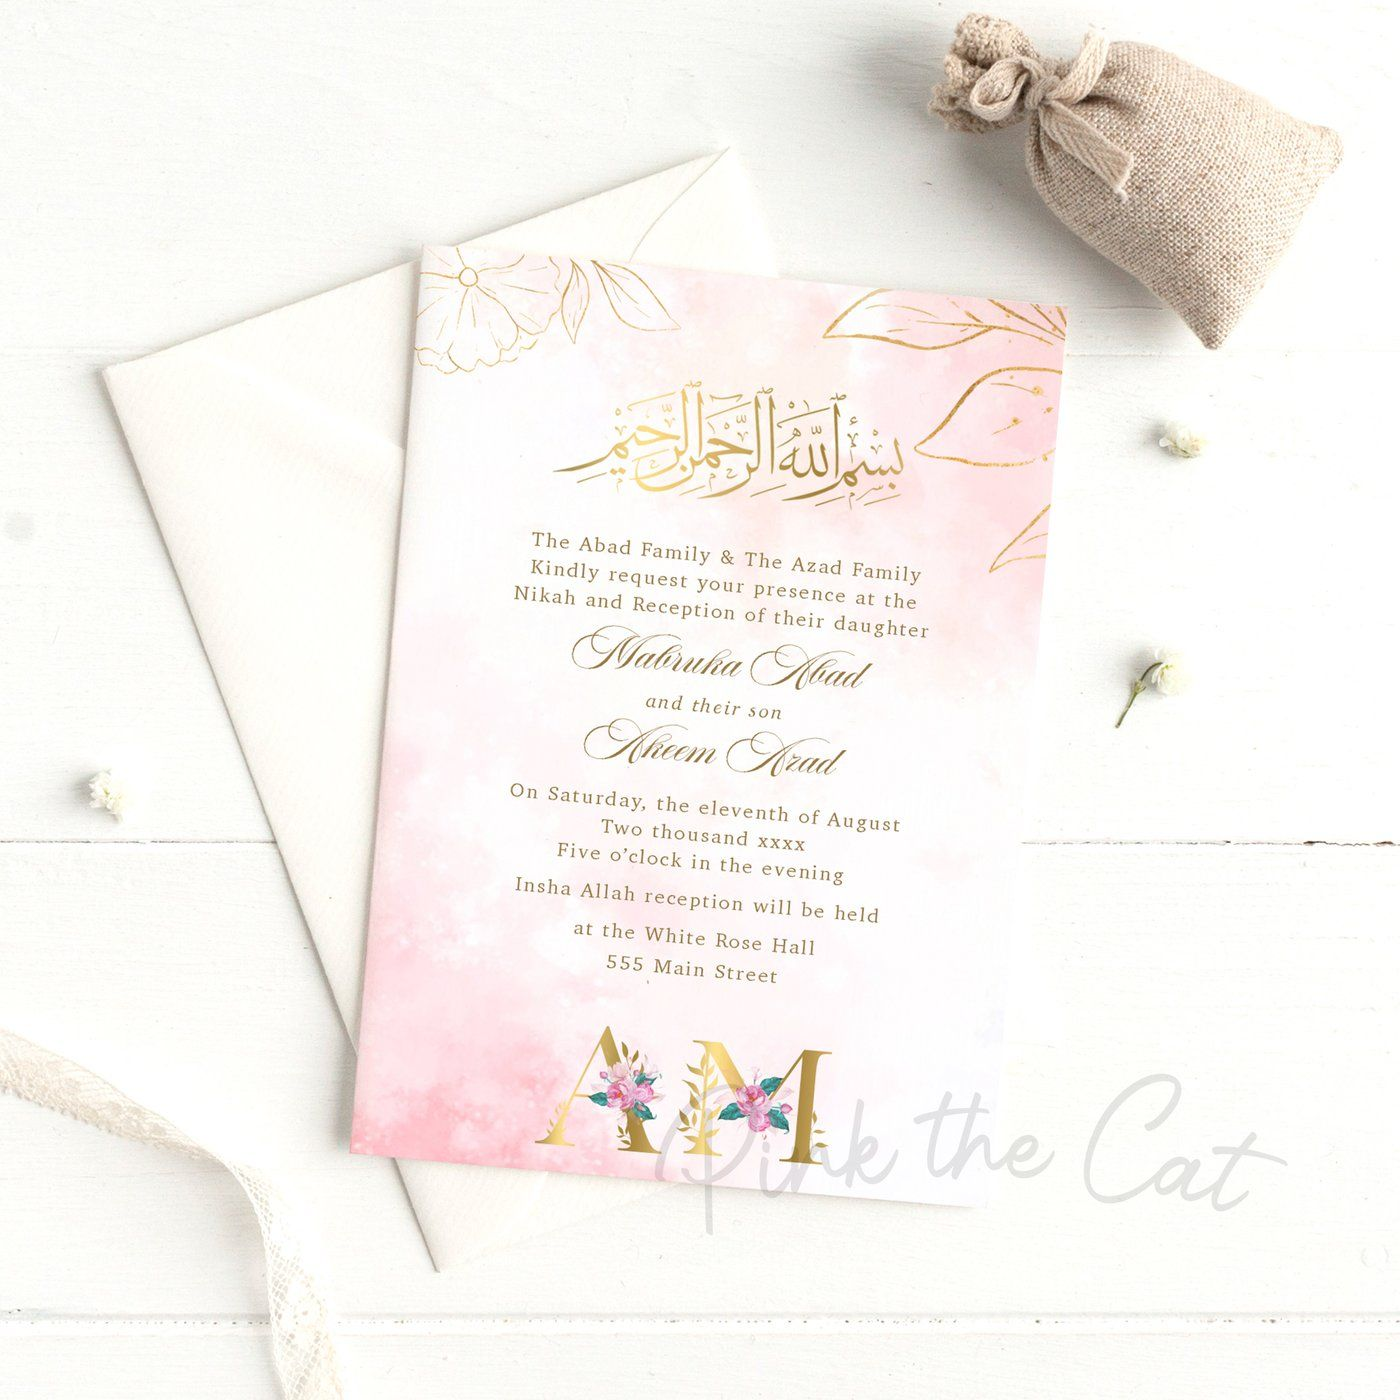 Nikah Invitations Floral Letters in 2020 Floral